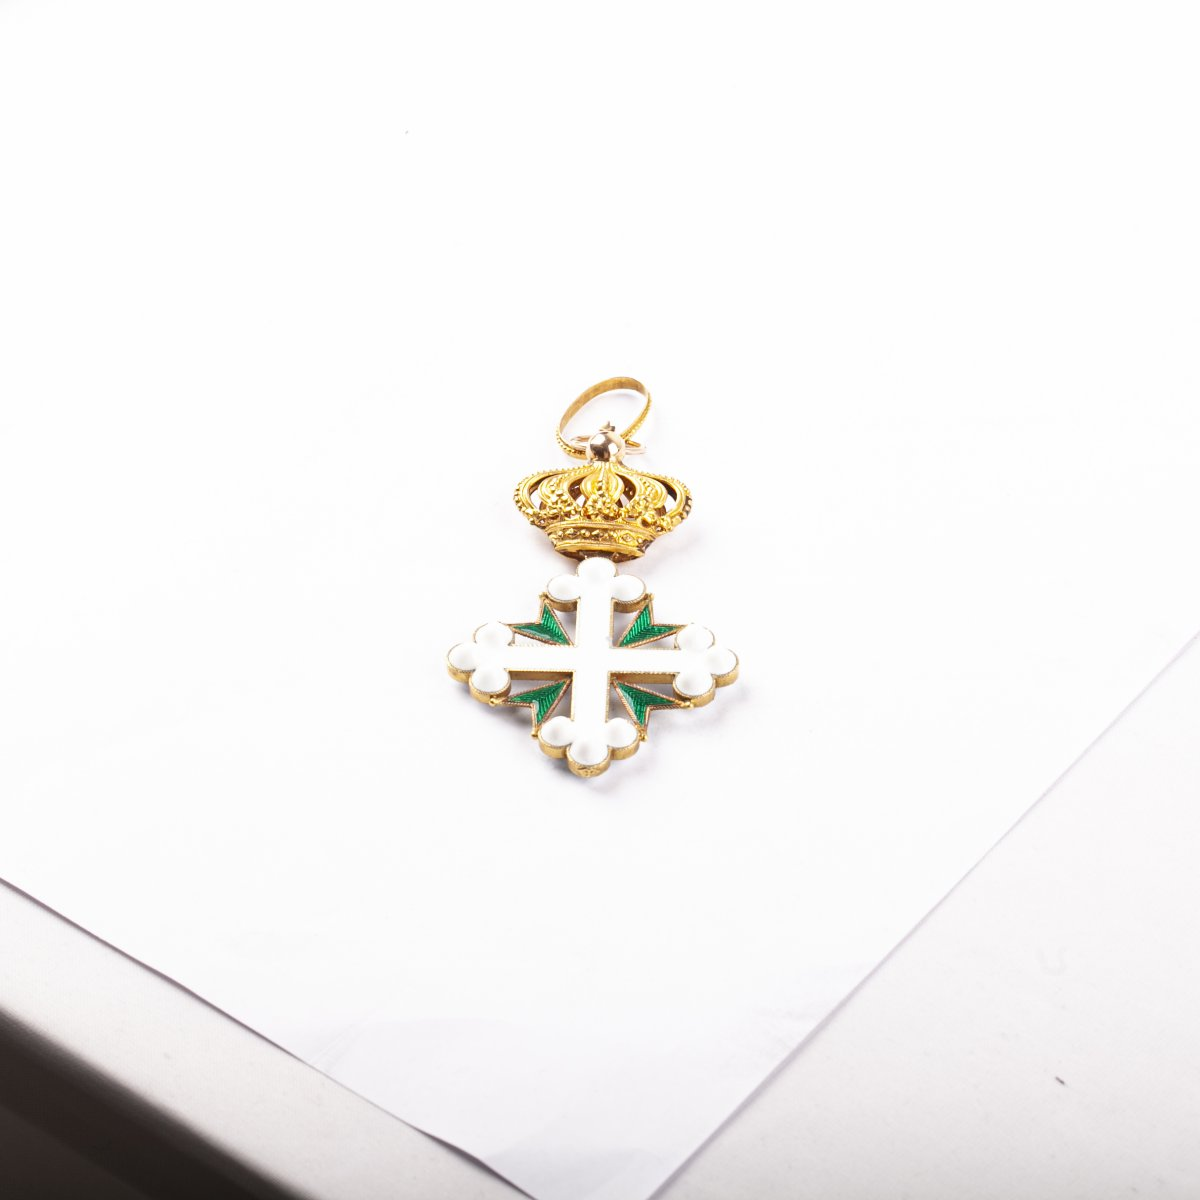 The Gold And Enamel Cross Of The Order Of Saint Maurice And Lazarus With Ribbon -photo-3